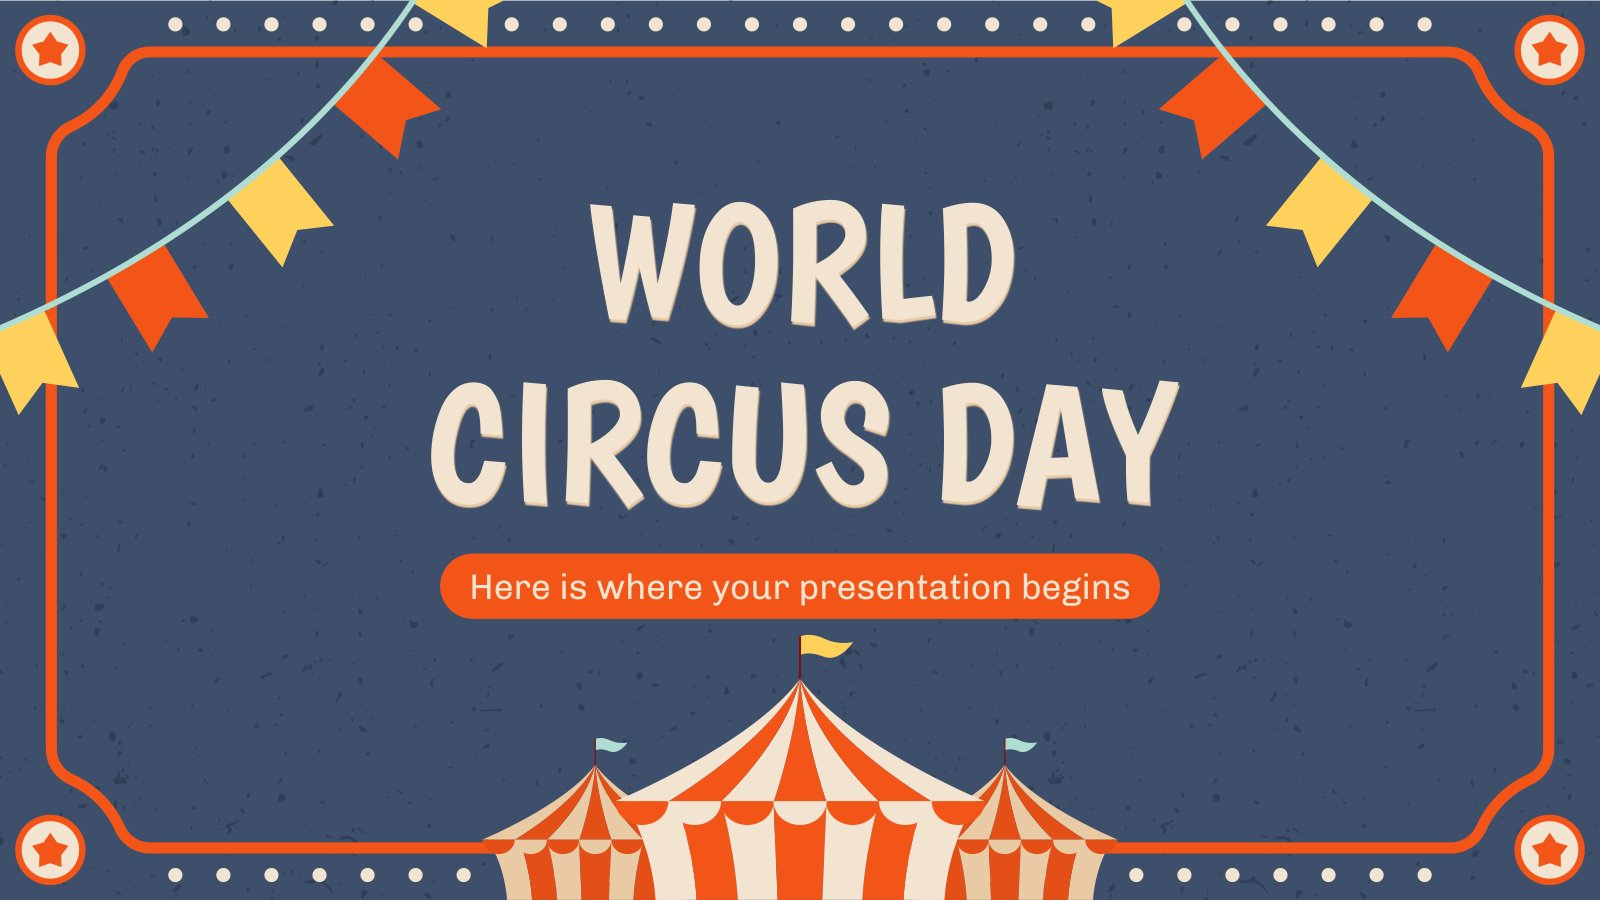 World Circus Day presentation template